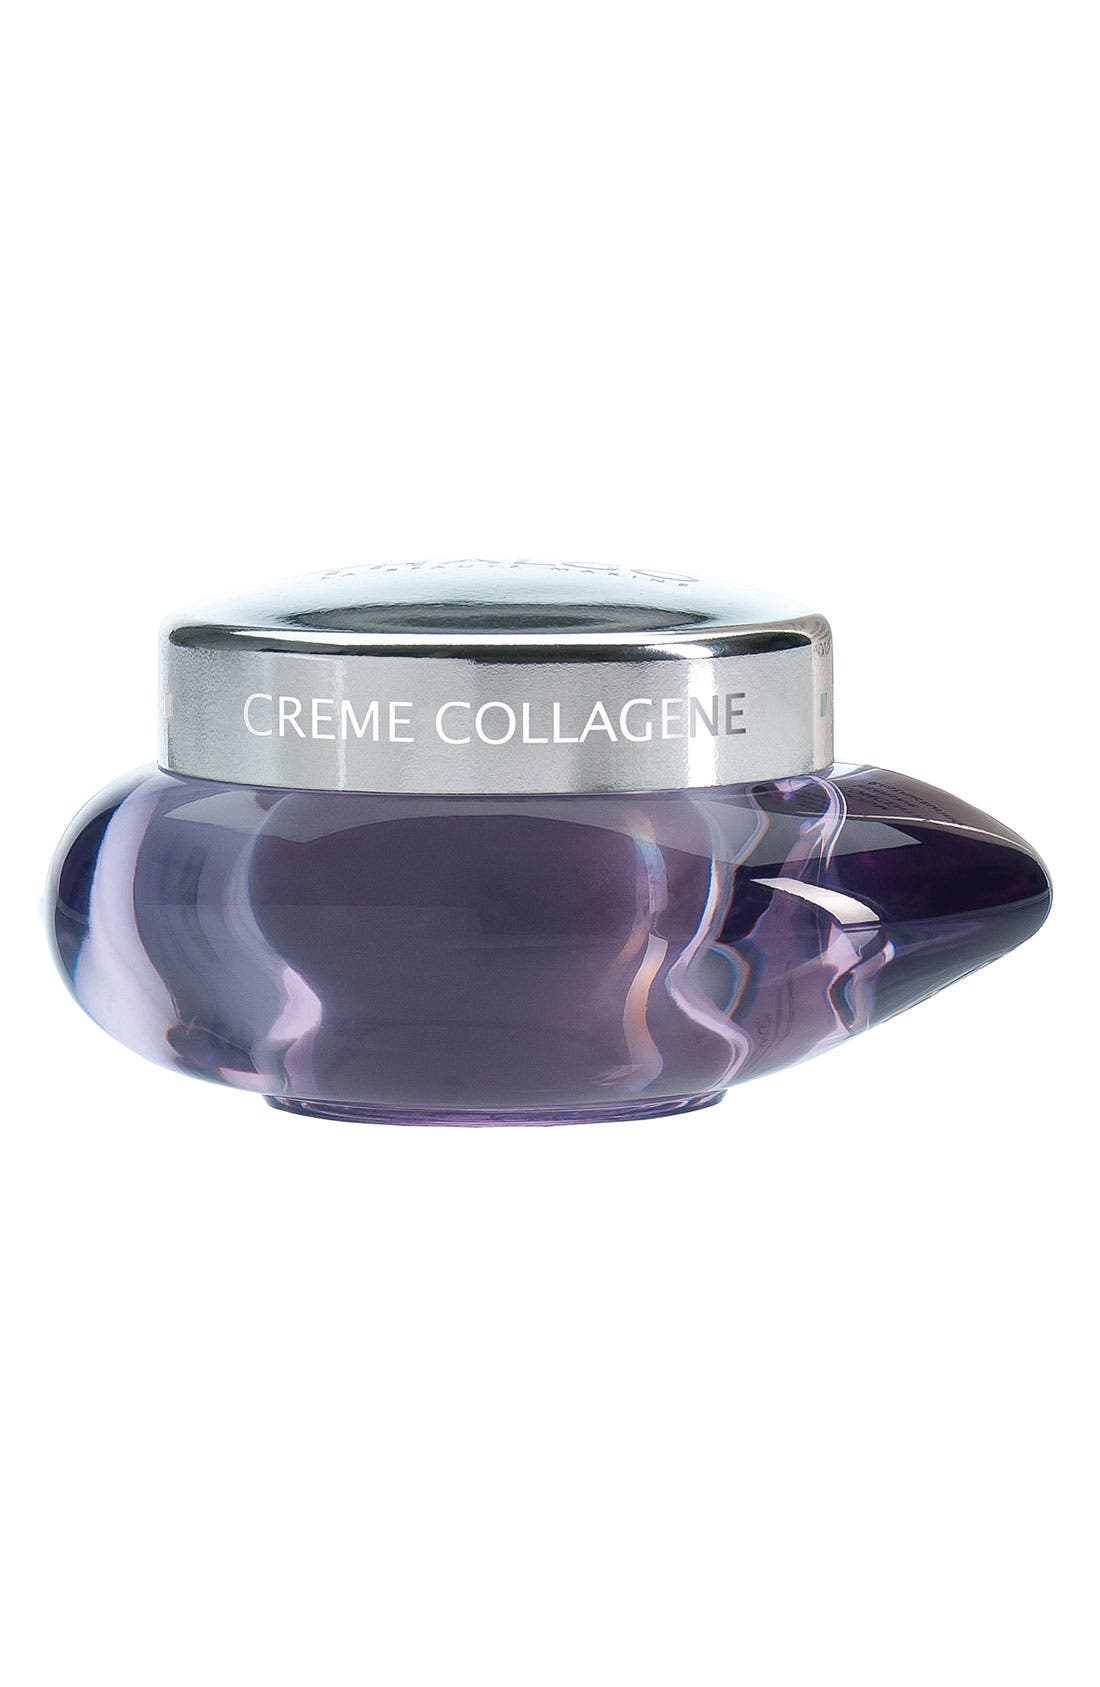 Thalgo 'Collagen' Cream